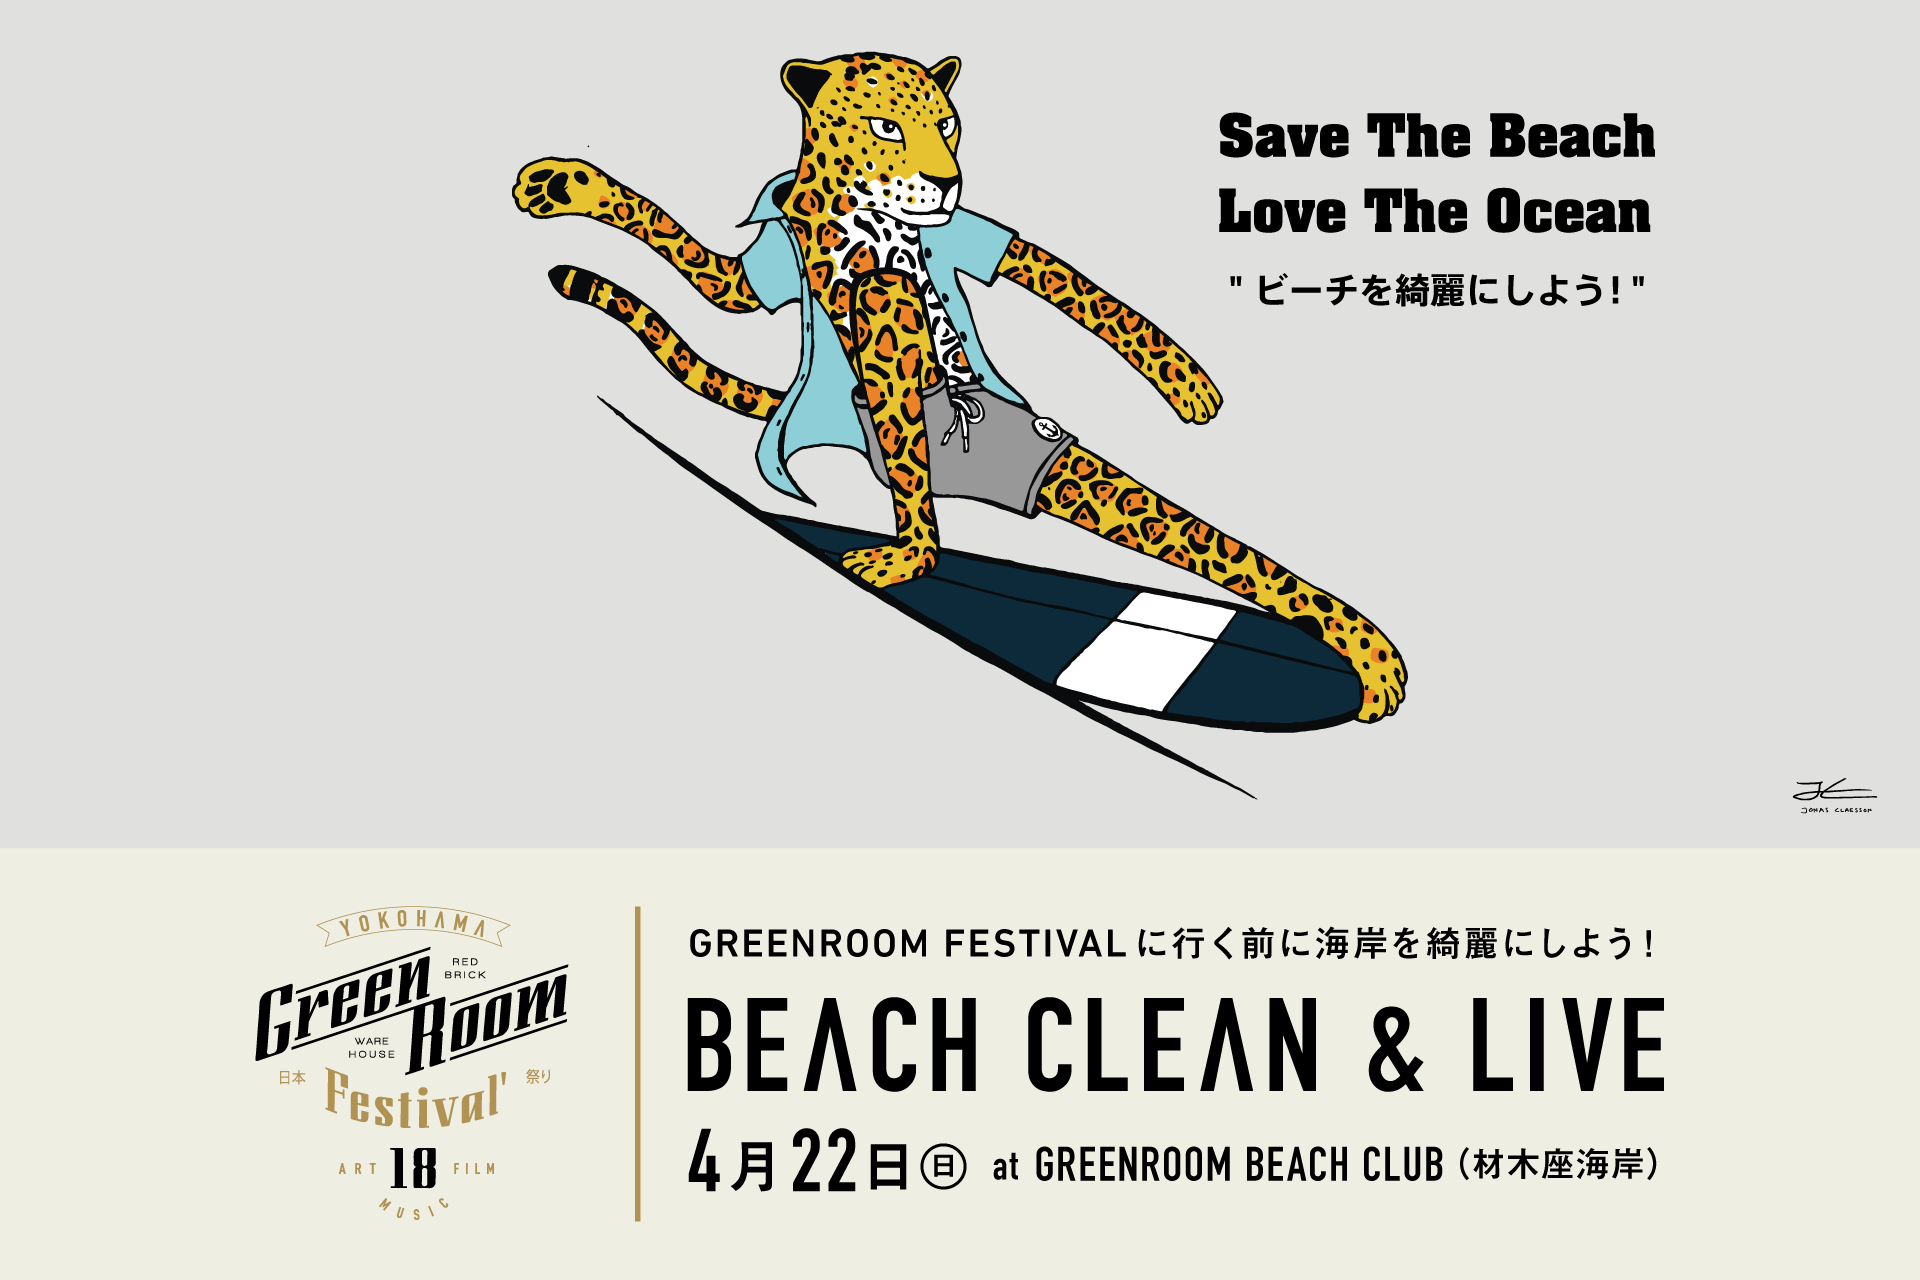 PRE PARTY BEACH CLEAN & LIVE ビーチクリーンエリア/出演アーティスト/コンテンツ発表!